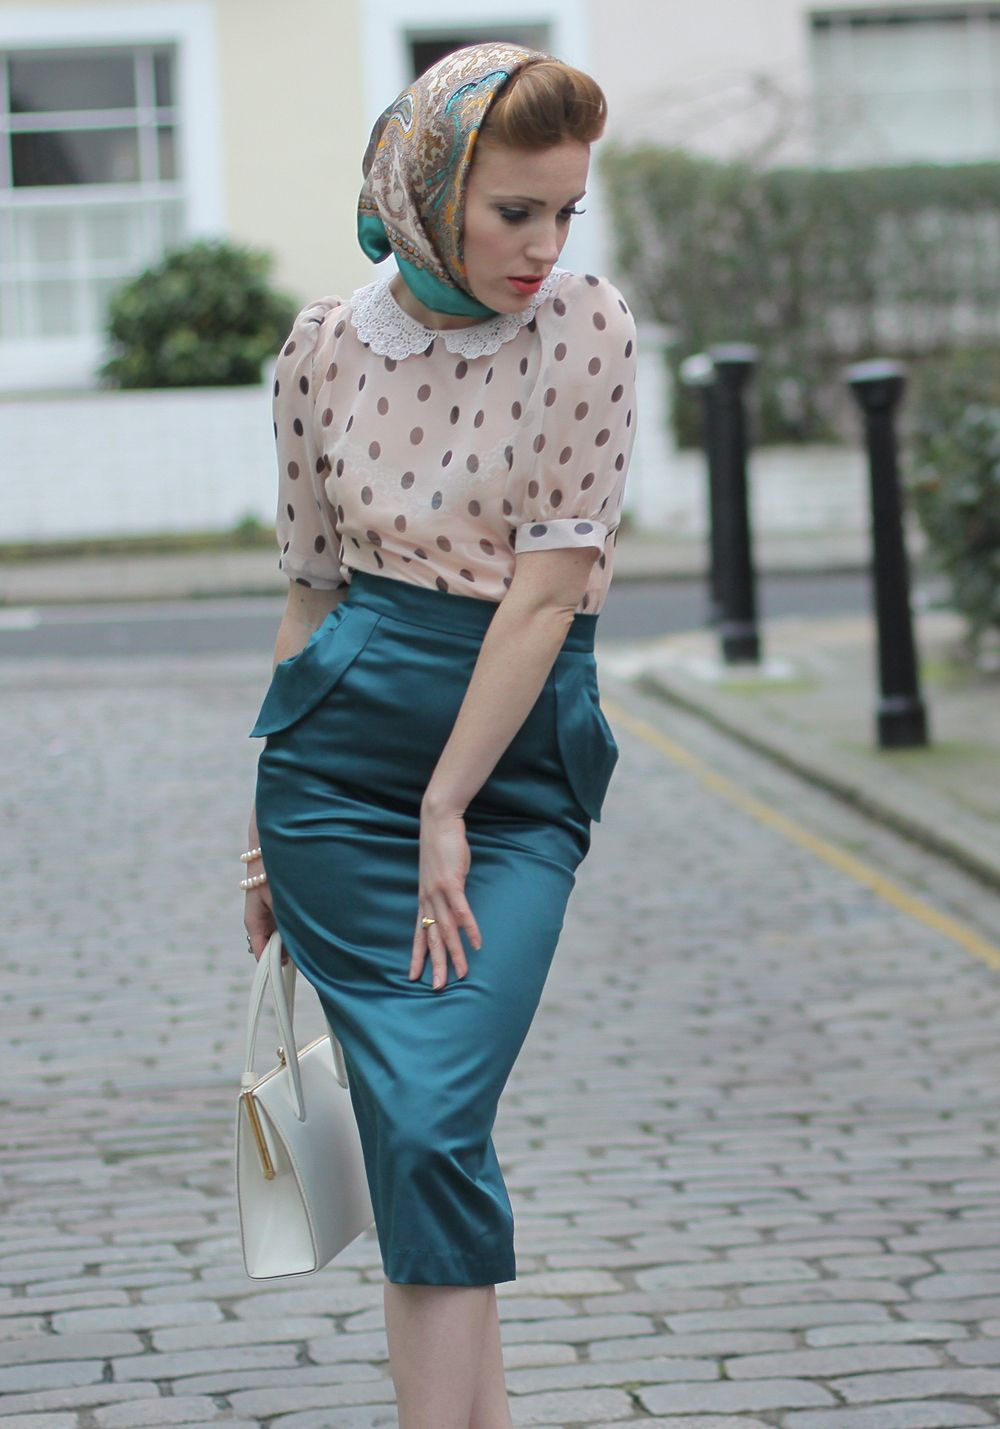 Tara Starlet 1940s 40s Style: Forties Sheer Blouse And Pencil Skirt